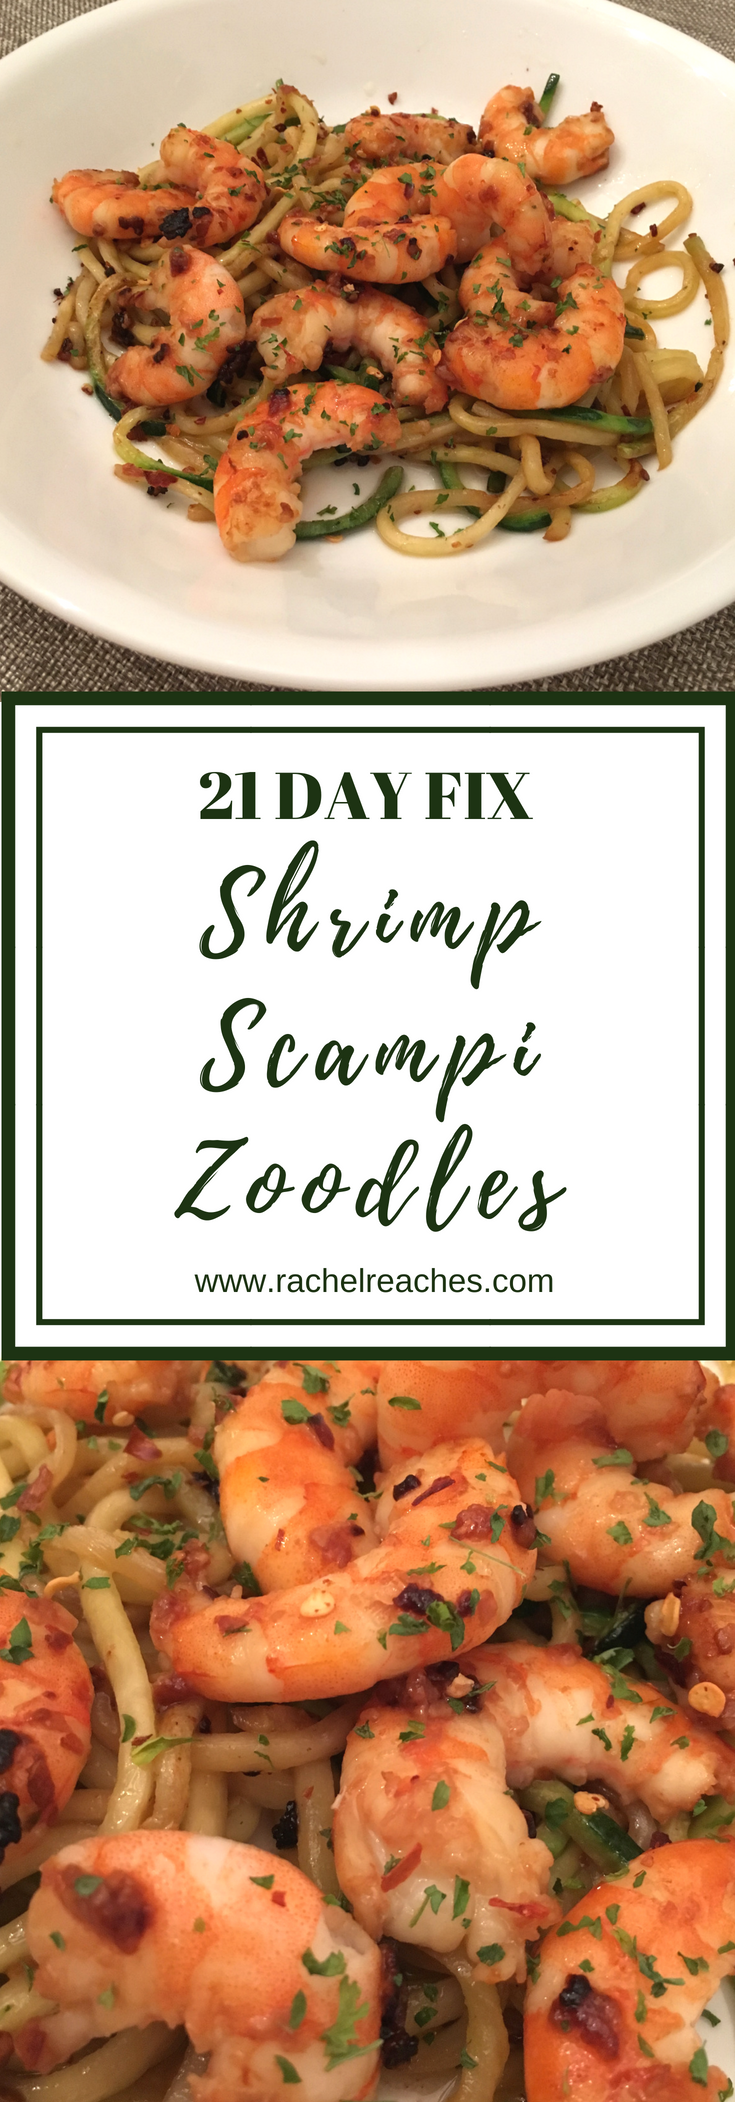 Shrimp Scampi Zoodles - 21 Day Fix.png